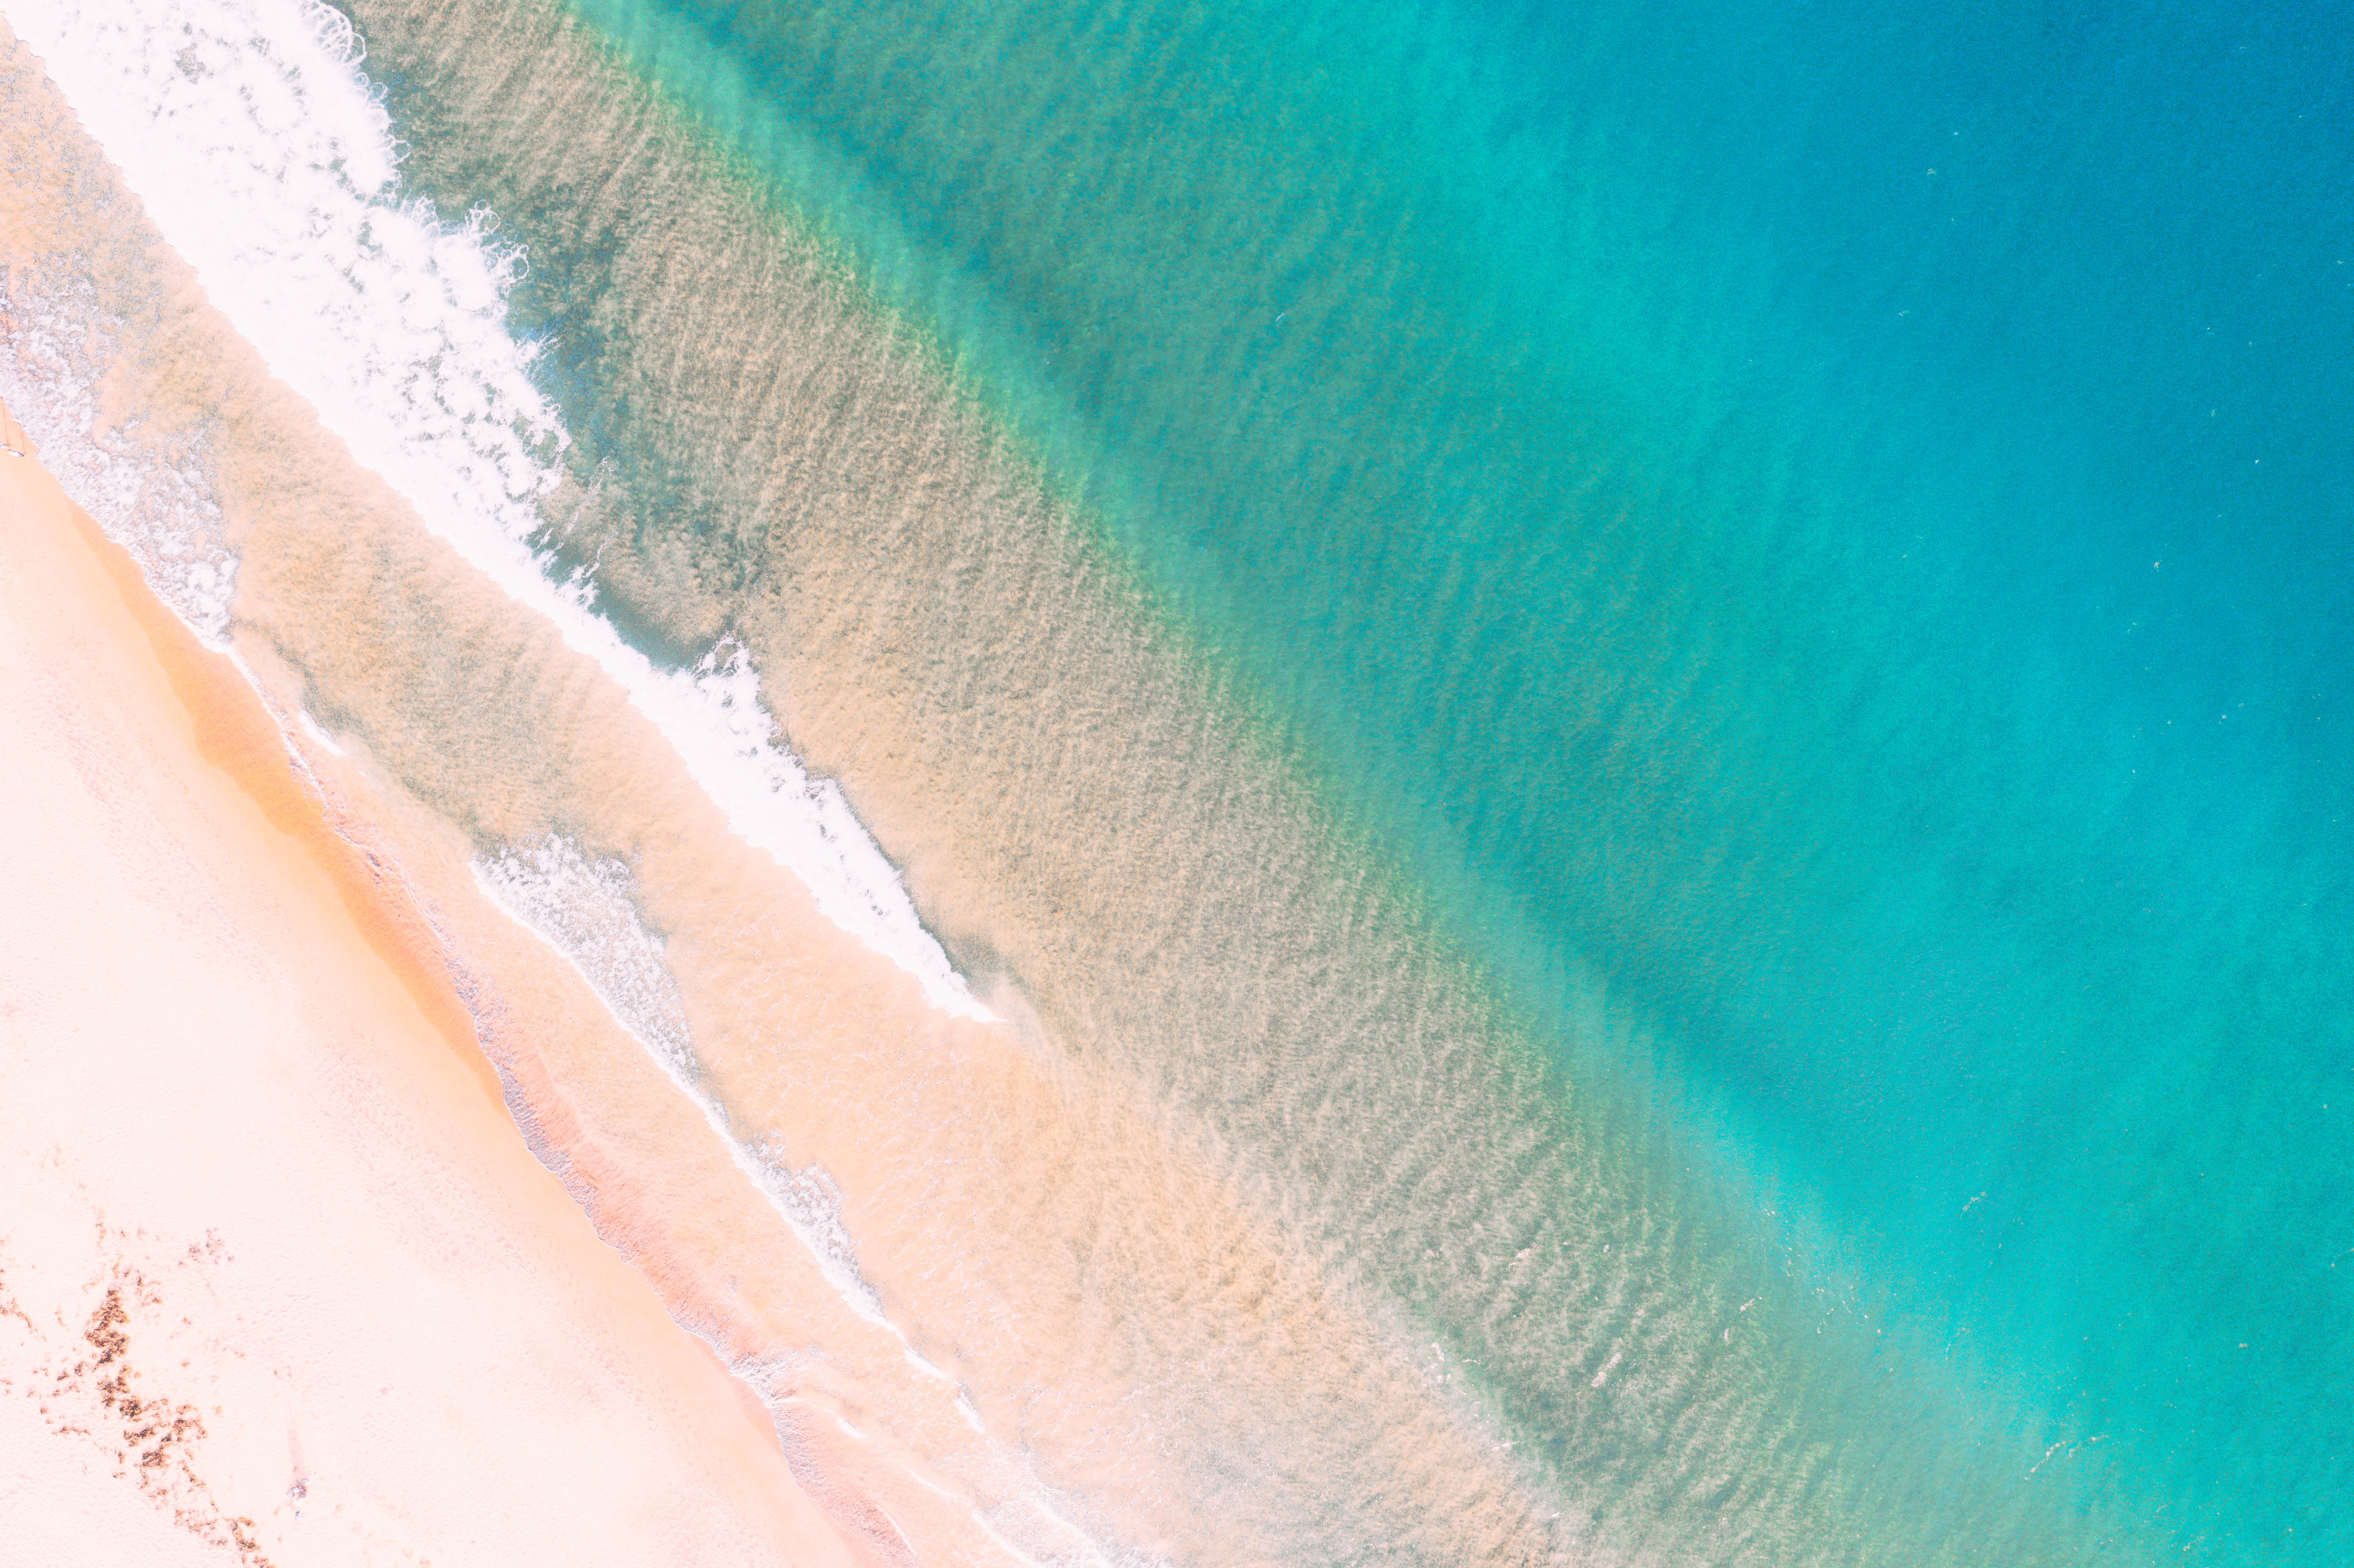 aerial photography teal body of water and shore